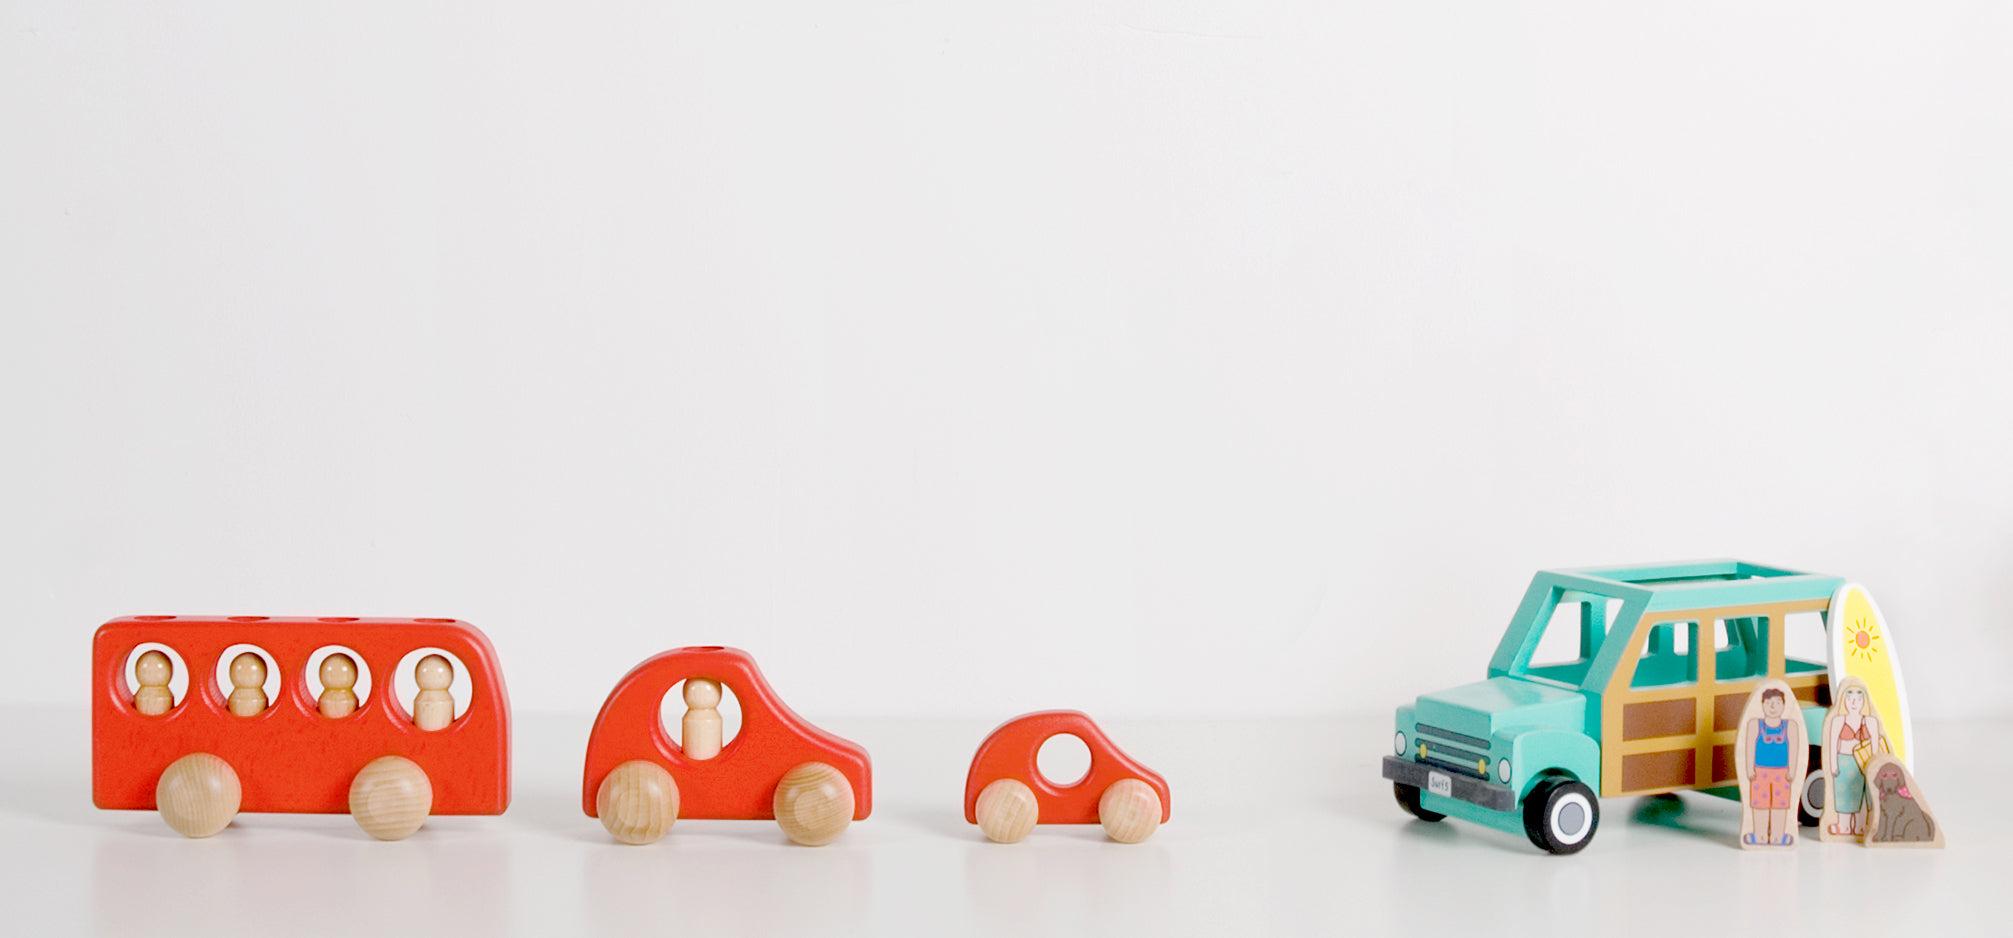 Wooden toy cars.